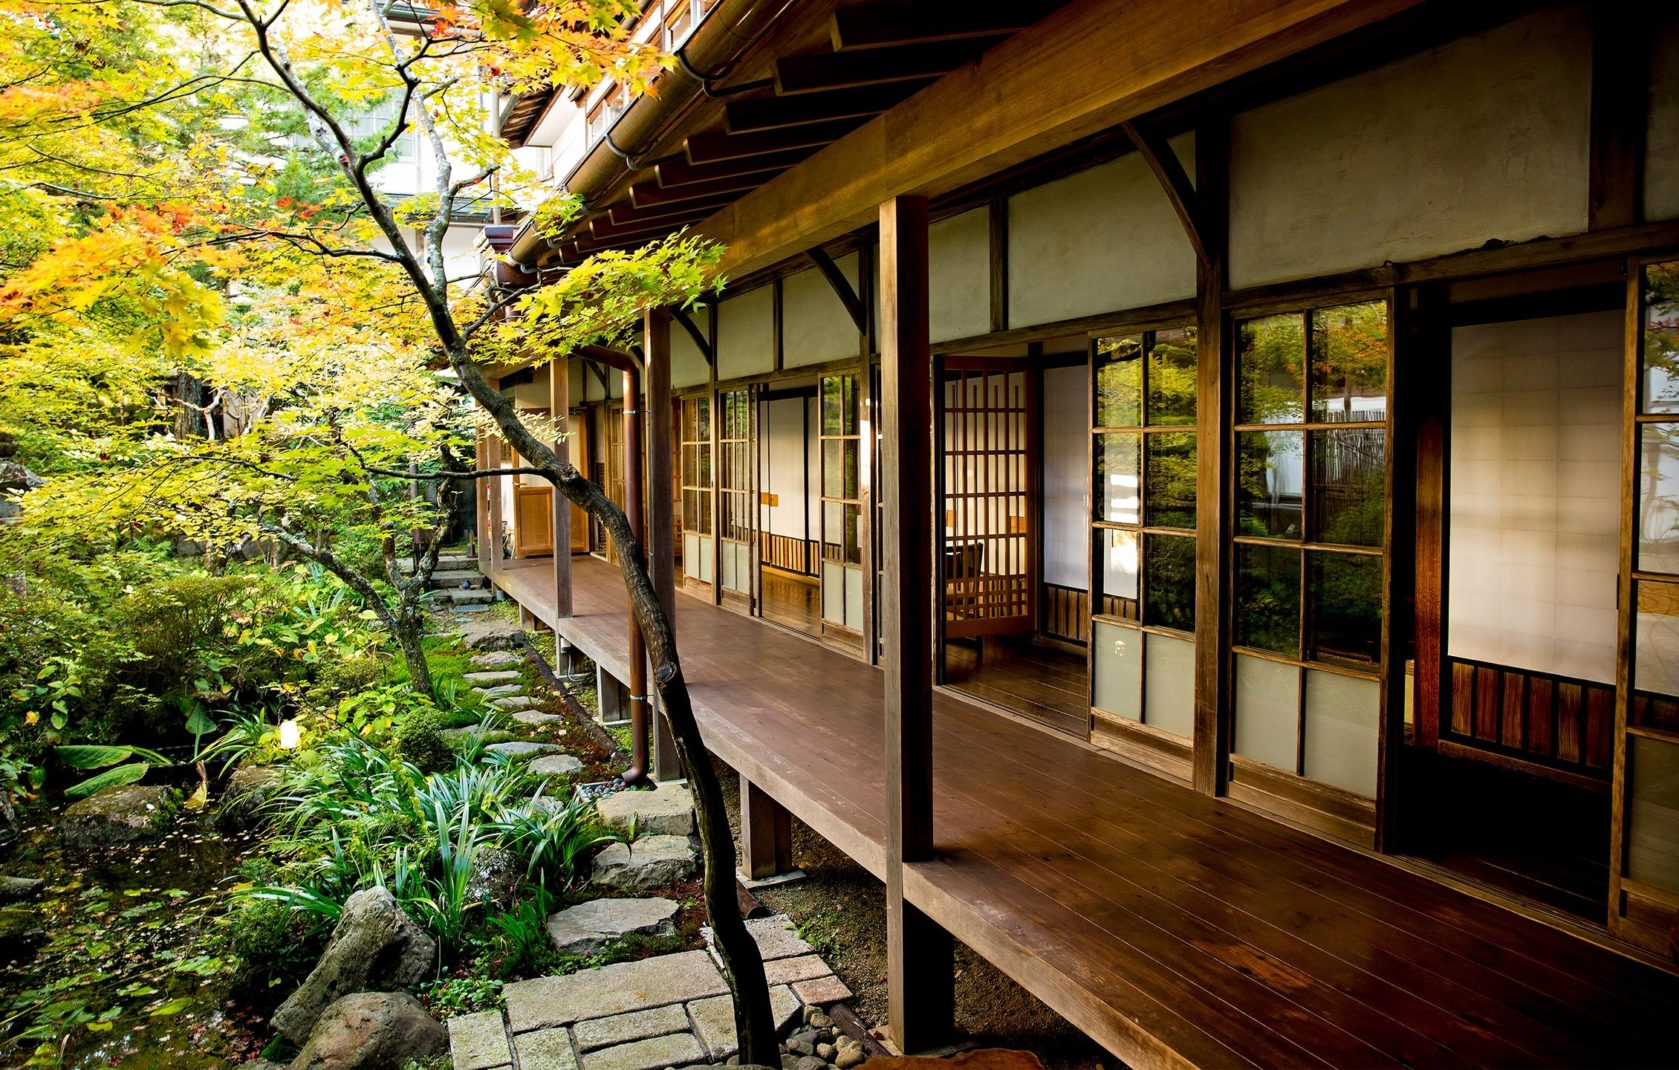 Bucket List Koyasan 3 Slider 2